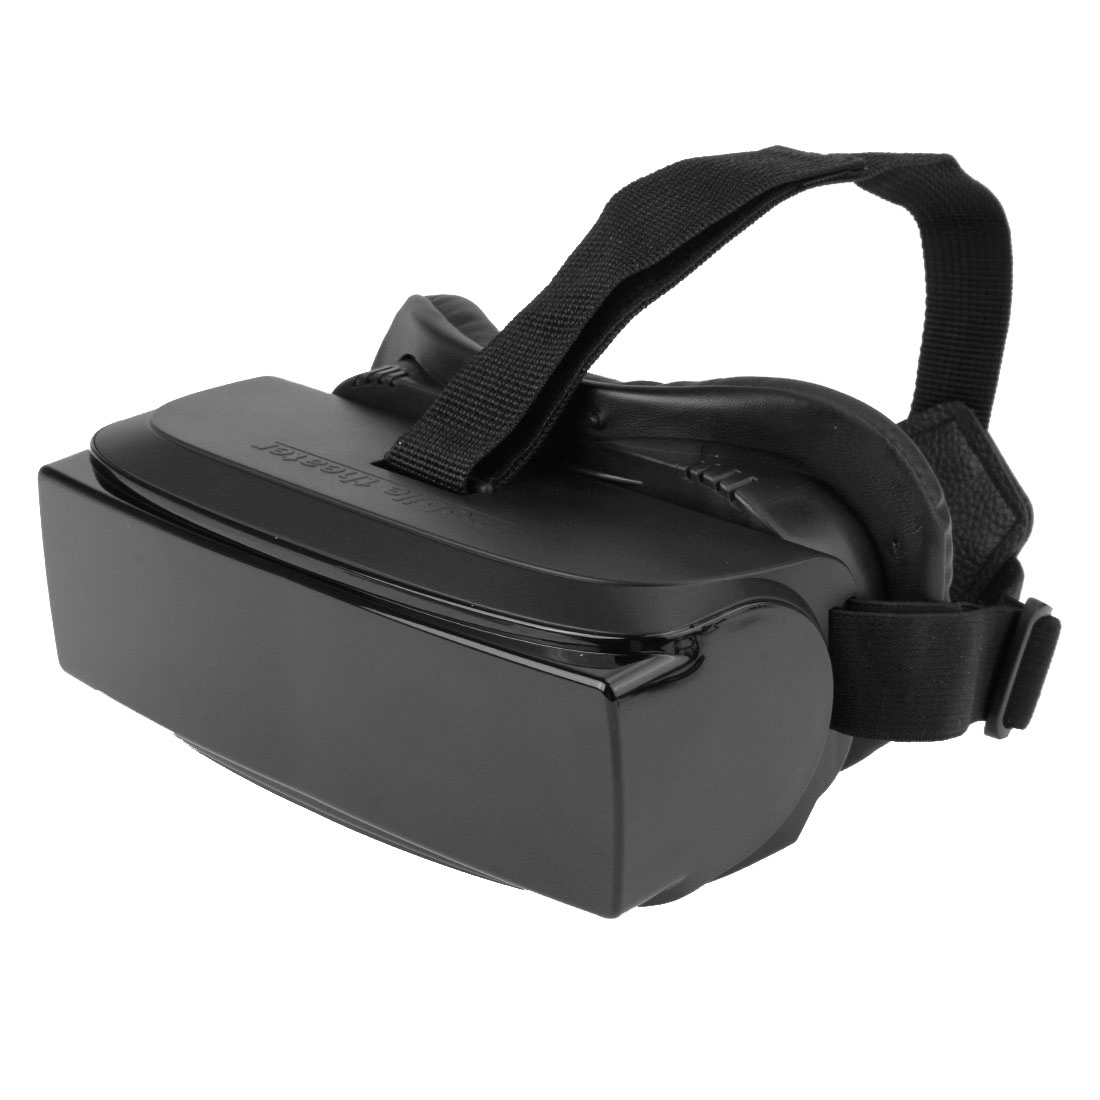 Universal Google Cardboard VR HMD-518 Virtual Reality 3D Glasses Game Movie 3D Glass For iPhone Android Mobile Phone Cinema